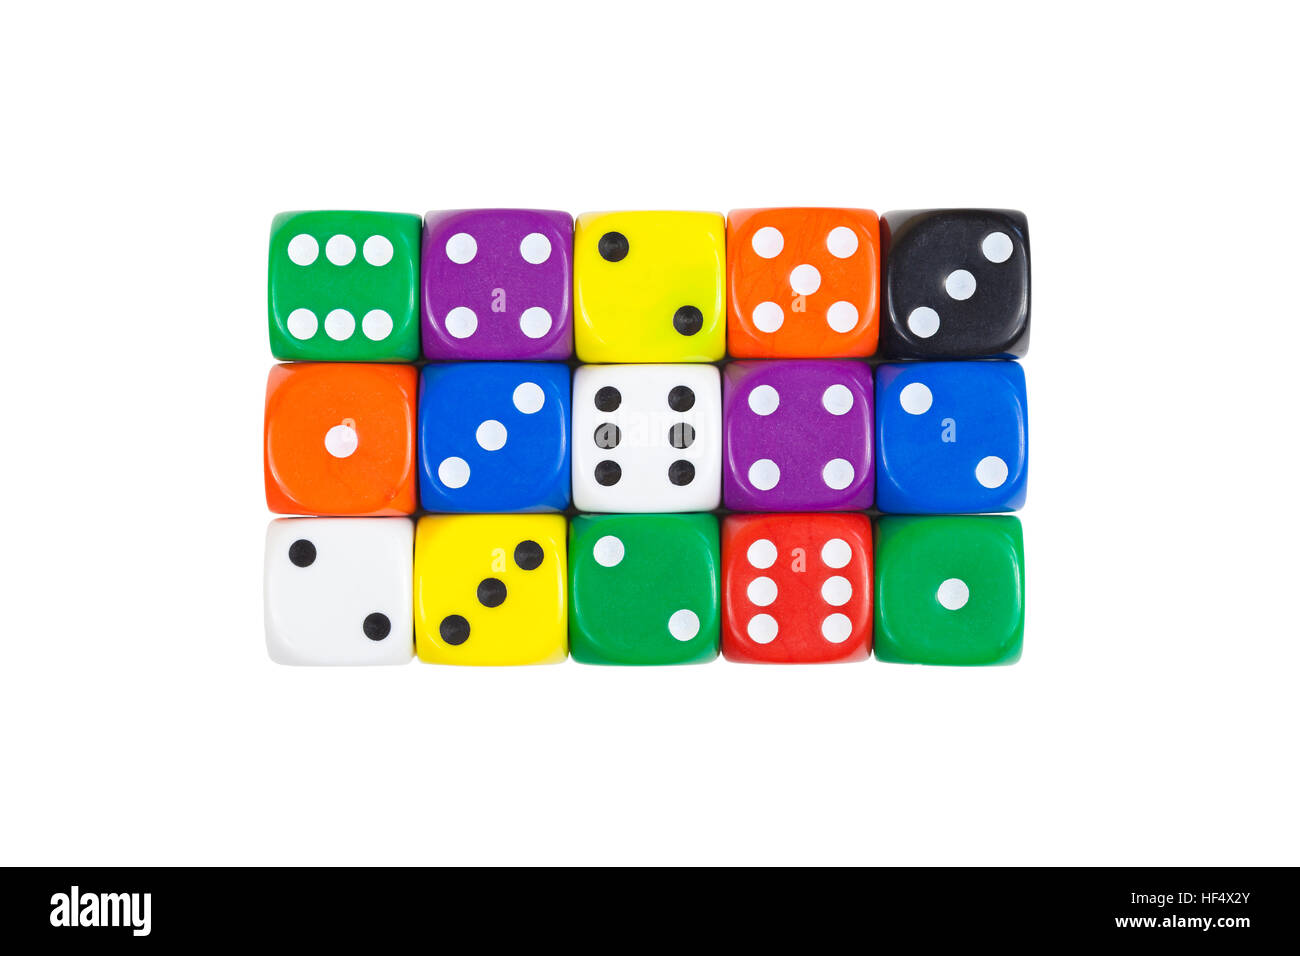 Colorful dice - Stock Image